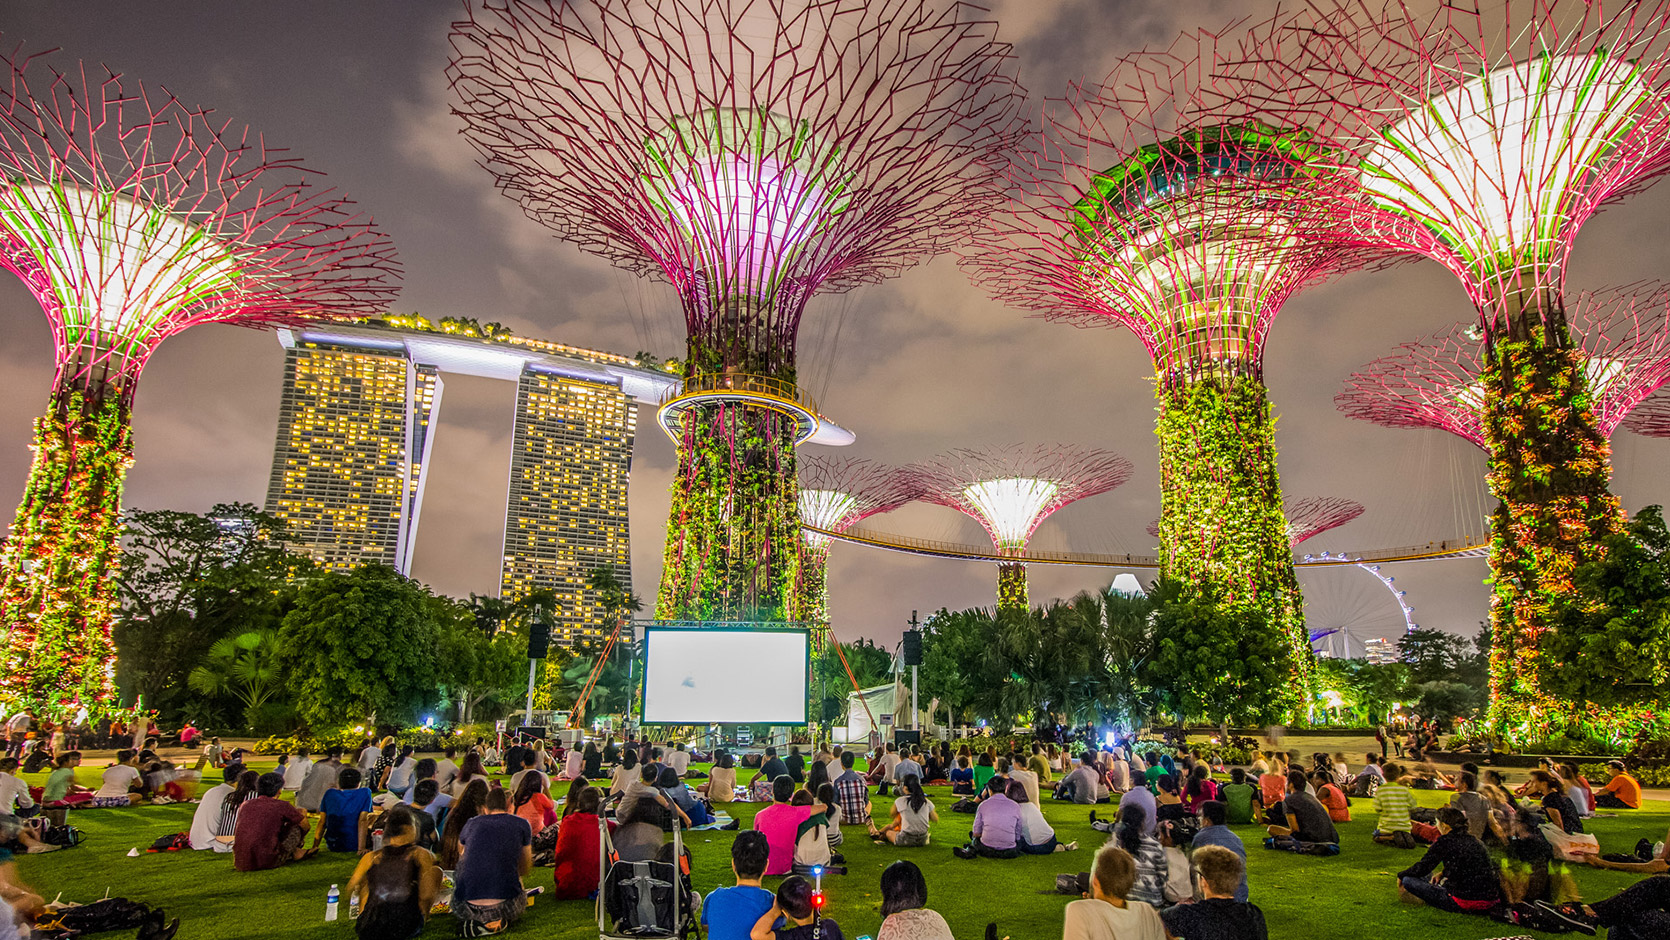 Cheap valentine 39 s day ideas that will please your date and wallet women news asiaone - Garden by the bay festival ...